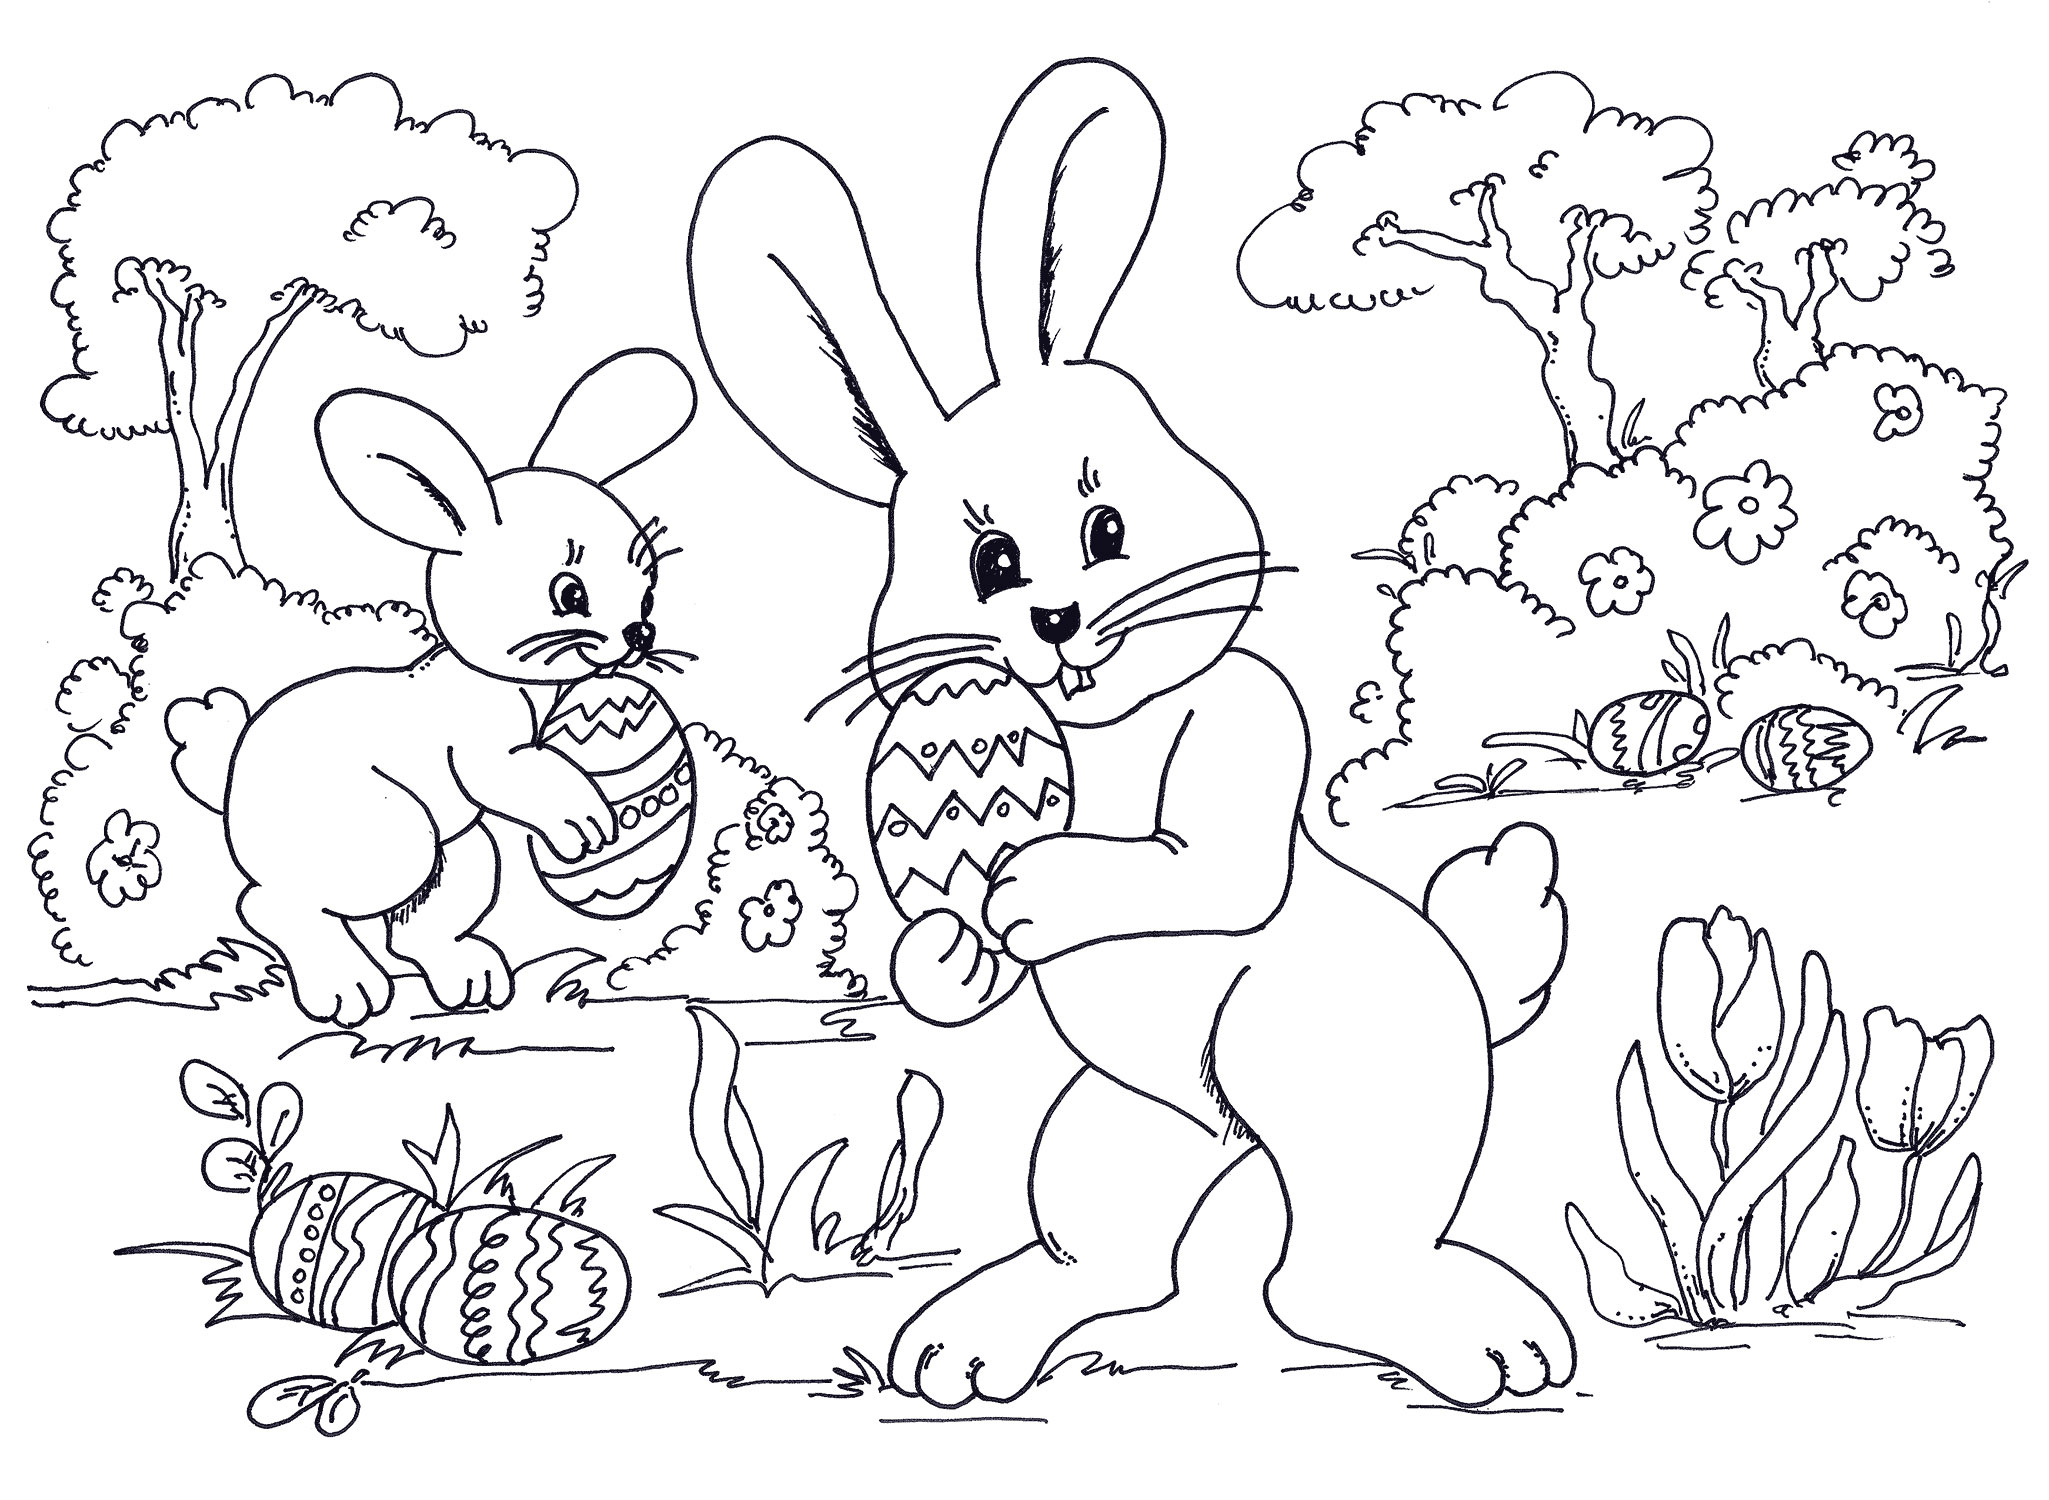 Free Easter Coloring Pages Easter Coloring Pages Best Coloring Pages to Print Of Delighted Bunny Print Out Coloring Pages Easter for Kids Crazy Printable